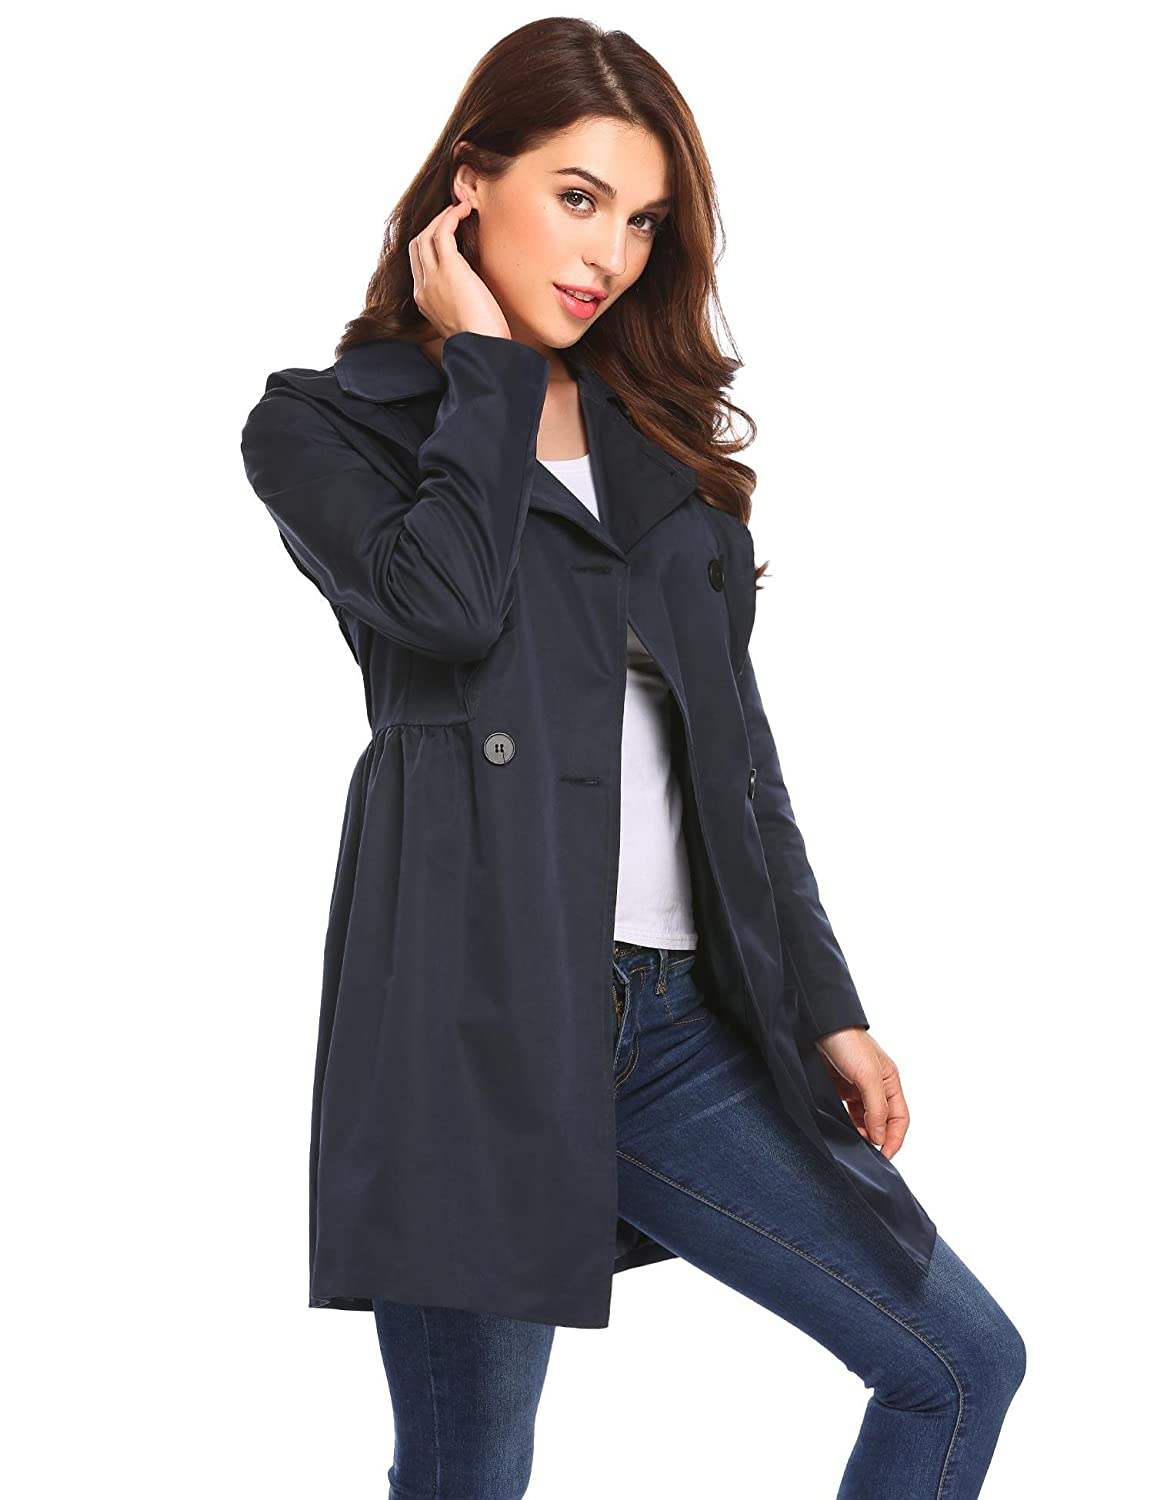 099cdca20ed Amazon.com  Bulges Women Turn Down Collar Double Breasted Slim A-Line Black  Trench Coat with Belt  Clothing